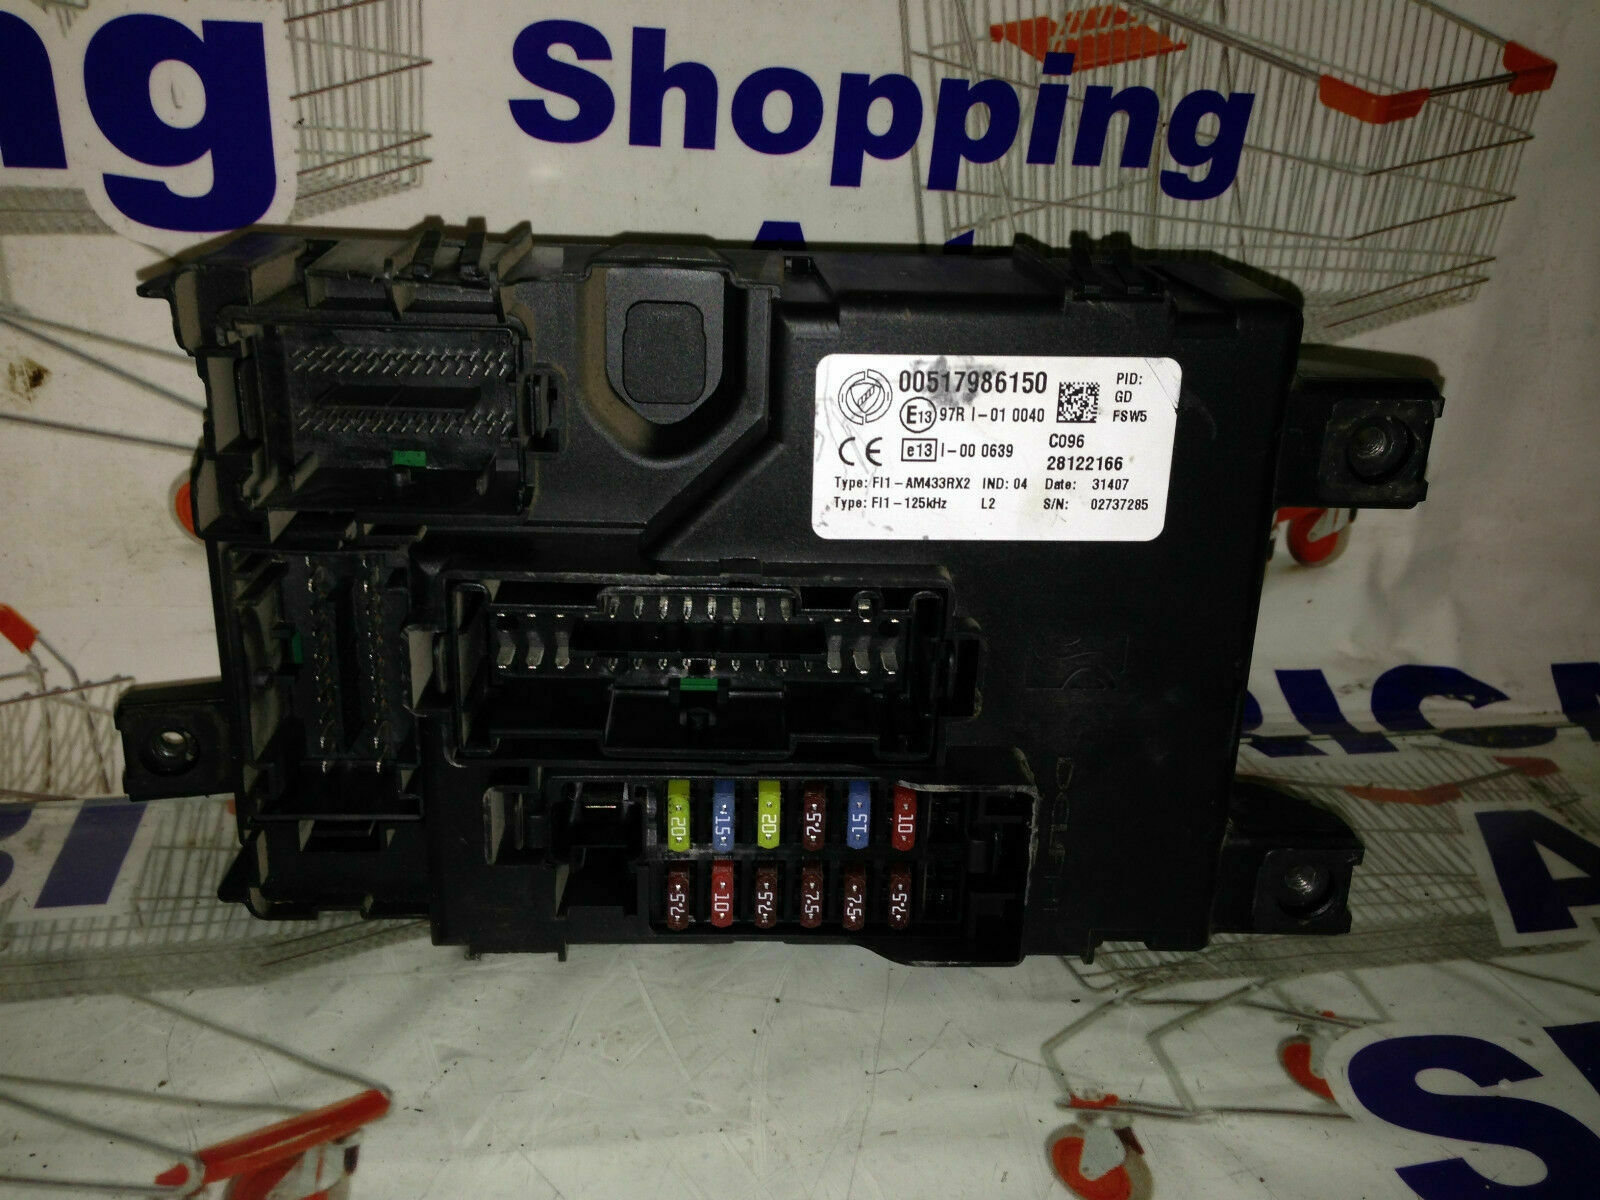 Tag Fiat Grande Punto 2007 Radio Fuse Box Glove Compartment Body Computer Holders 13 90cv Code 00517986150 1 Of 1only Available